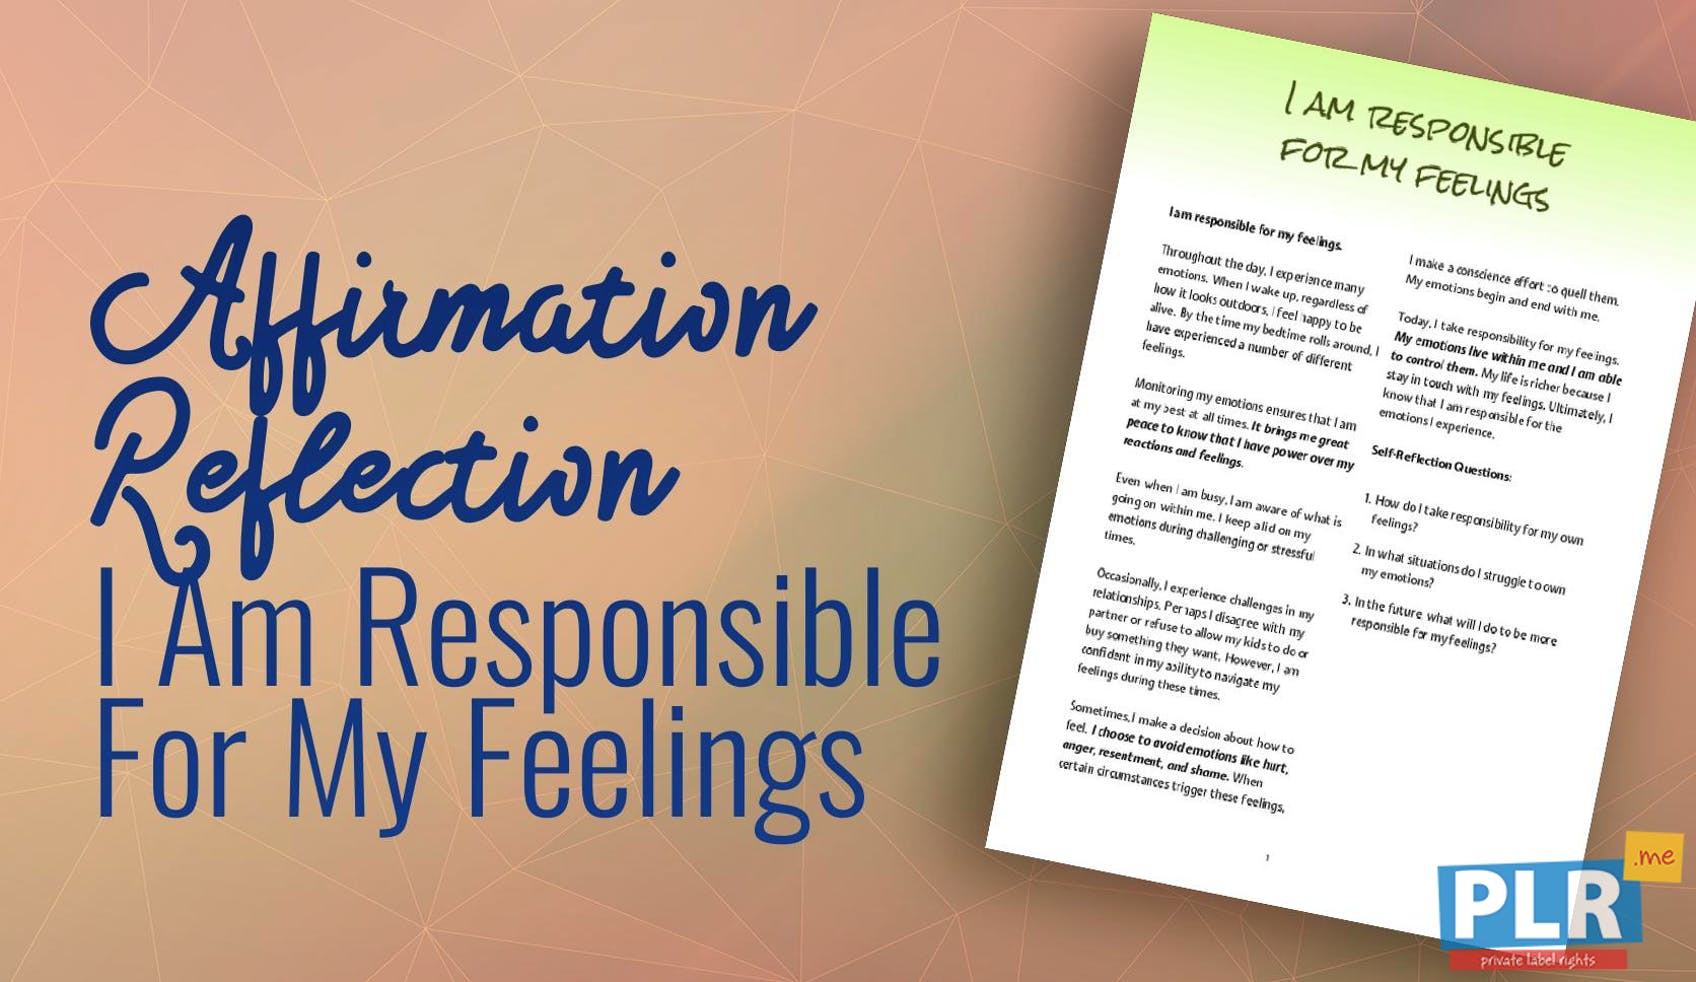 I Am Responsible For My Feelings